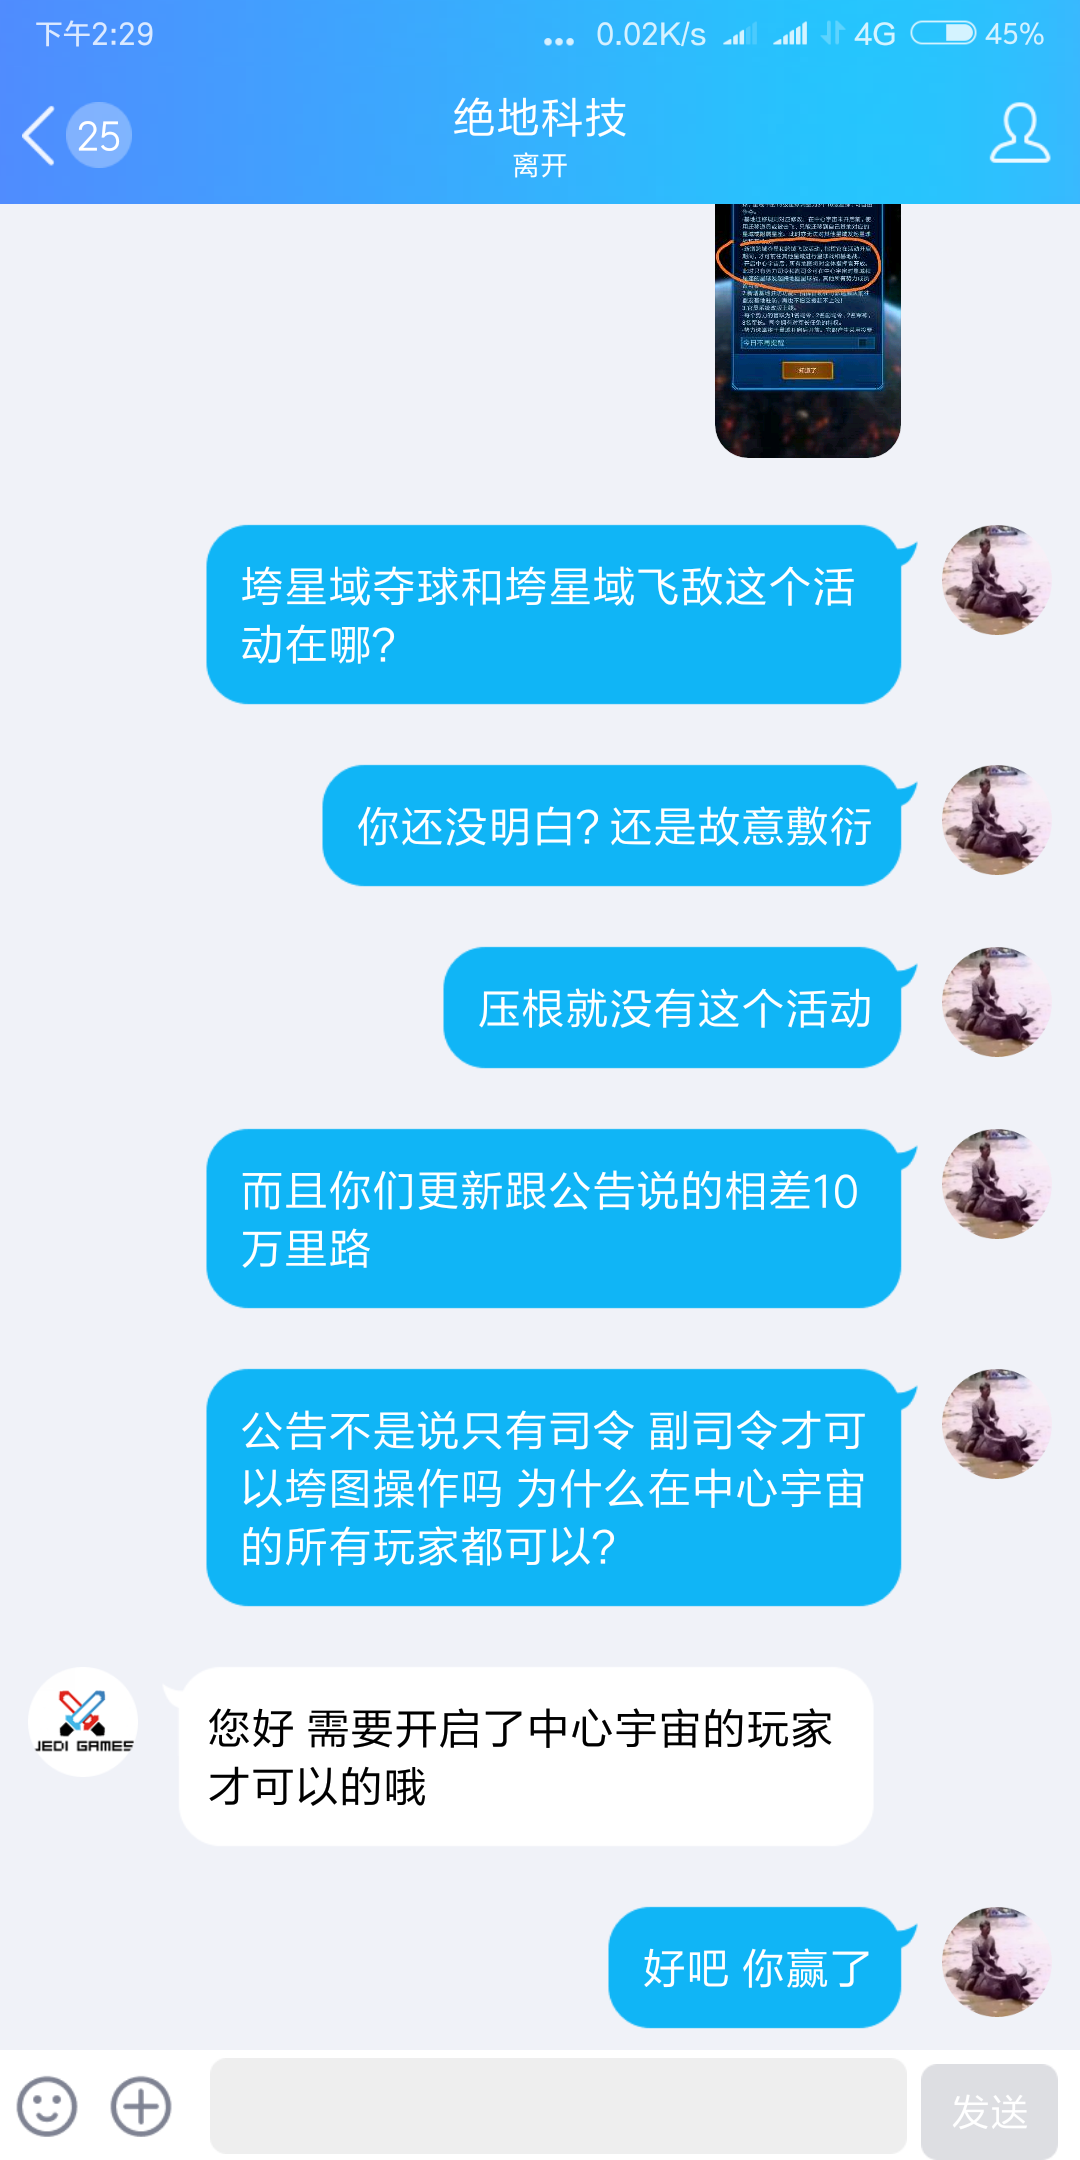 Screenshot_2018-07-27-14-29-33-870_com.tencent.mobileqq.png